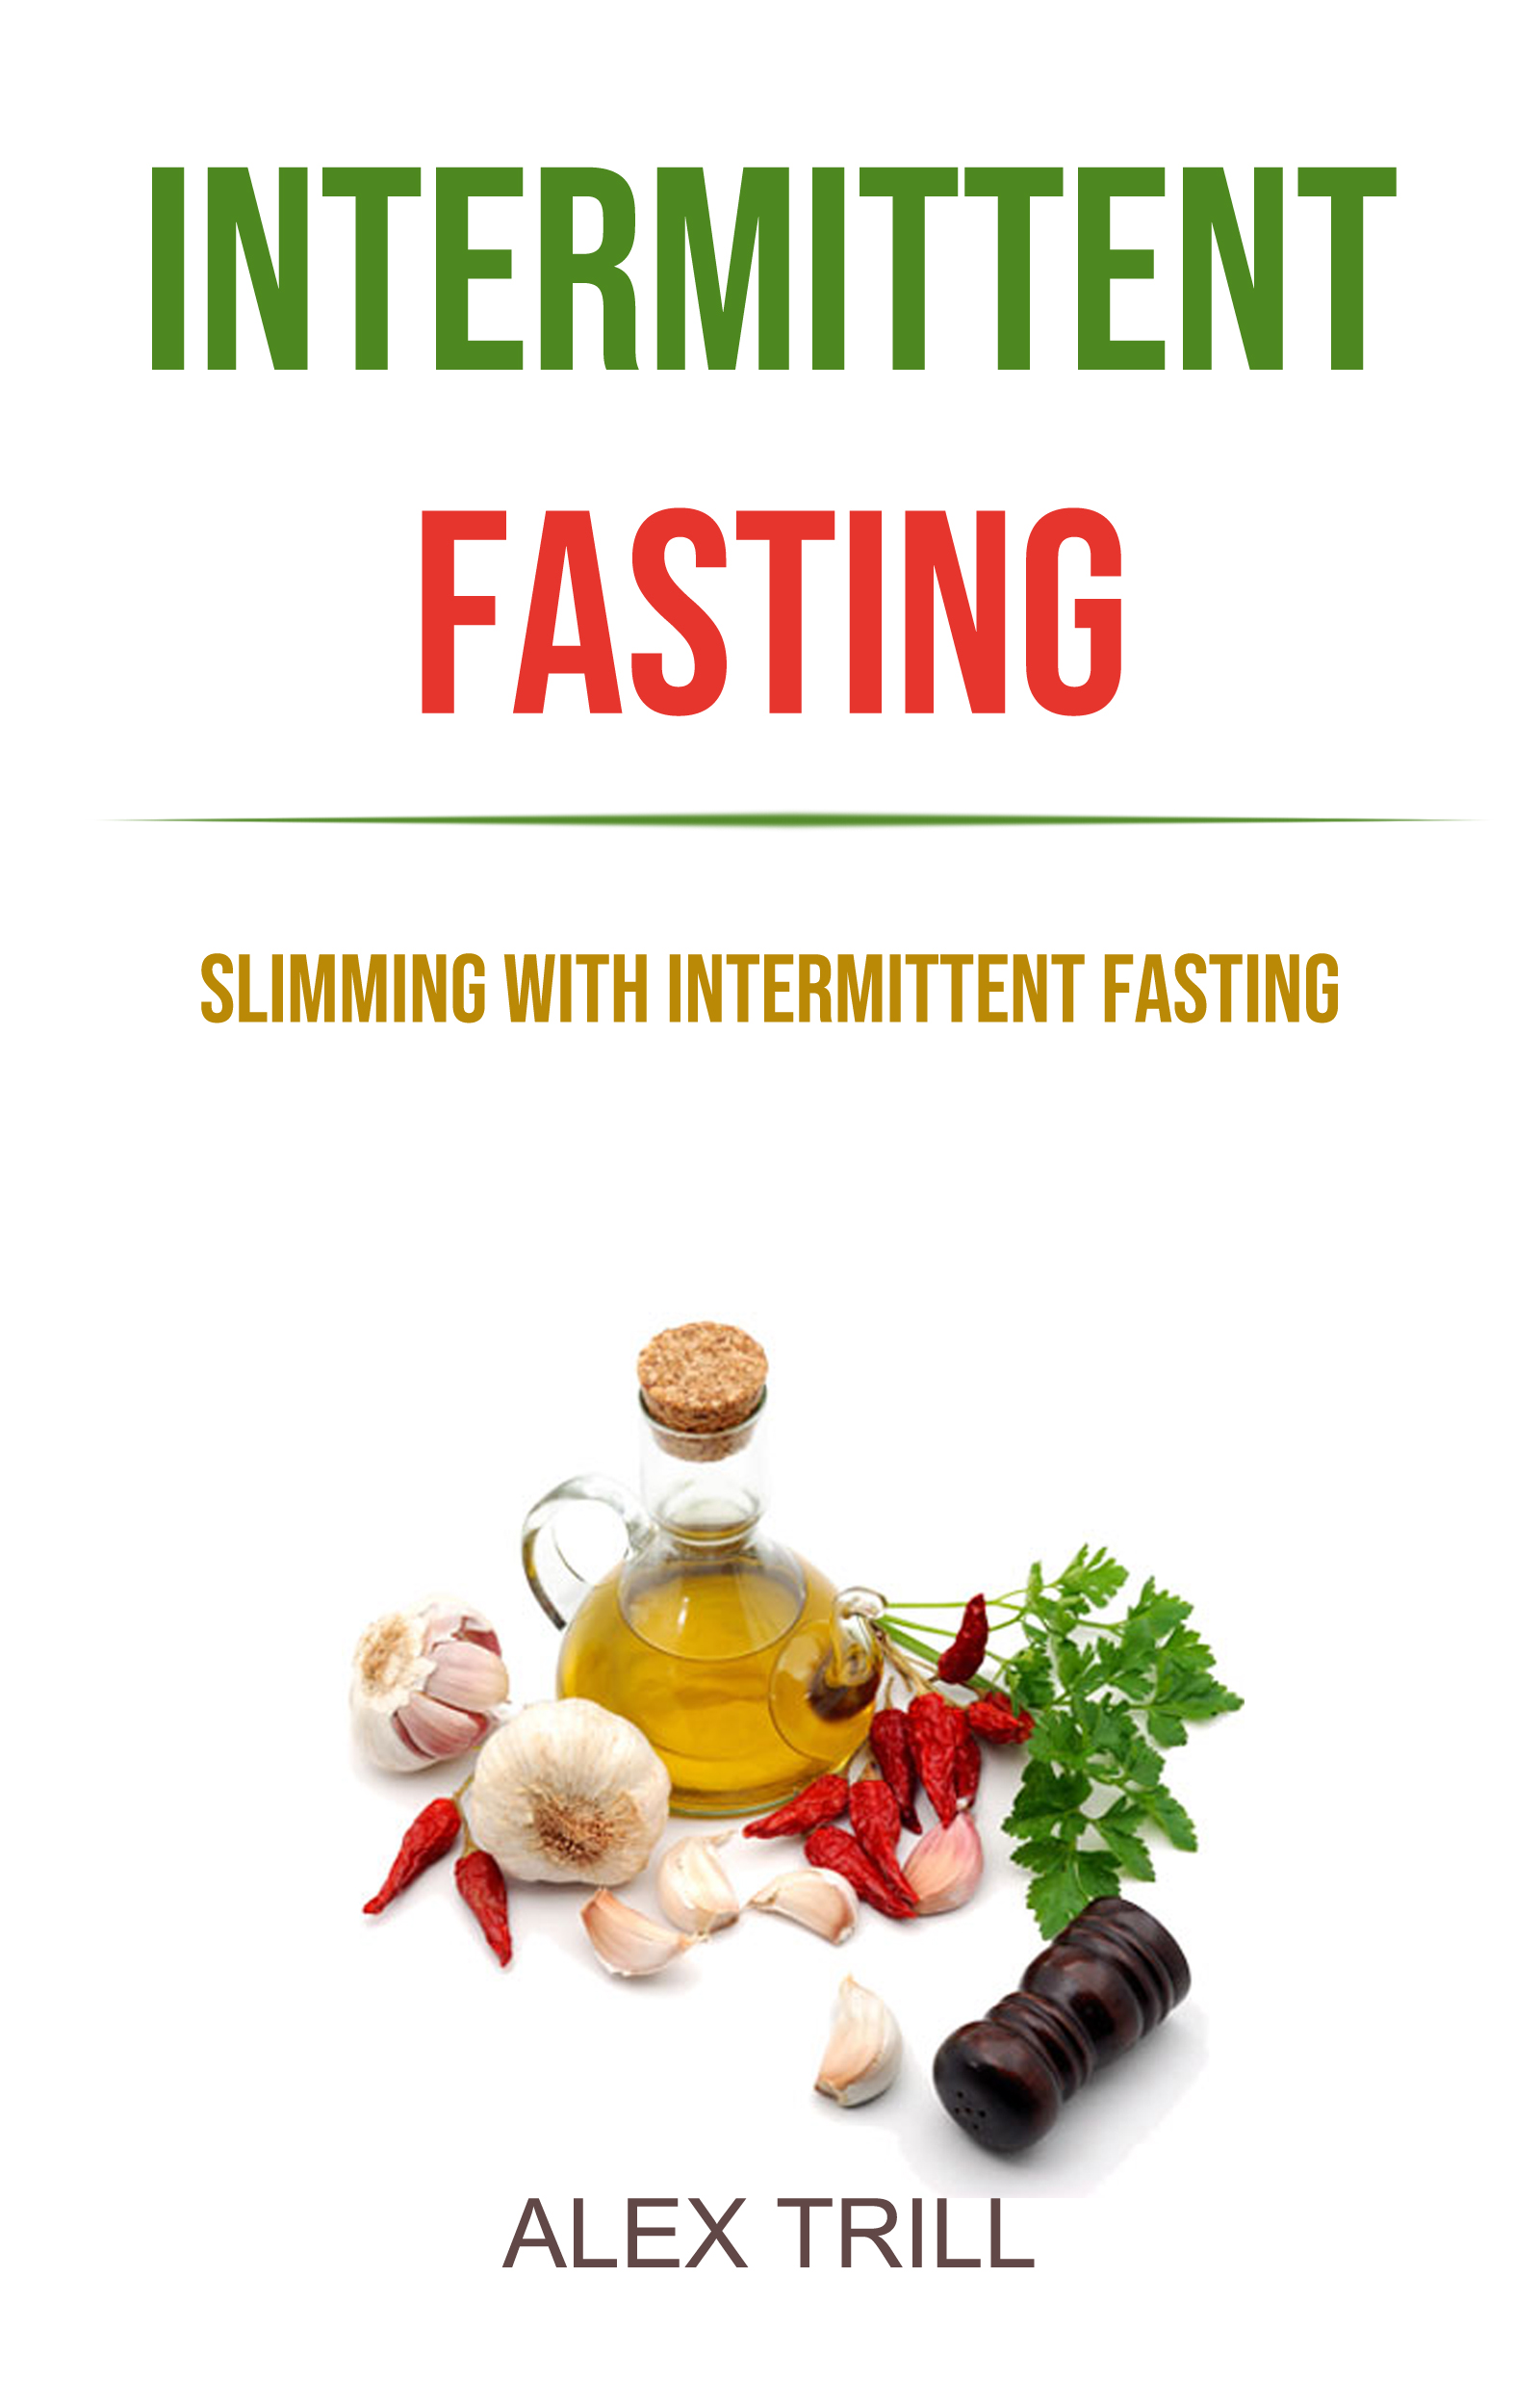 Intermittent fasting: slimming with intermittent fasting